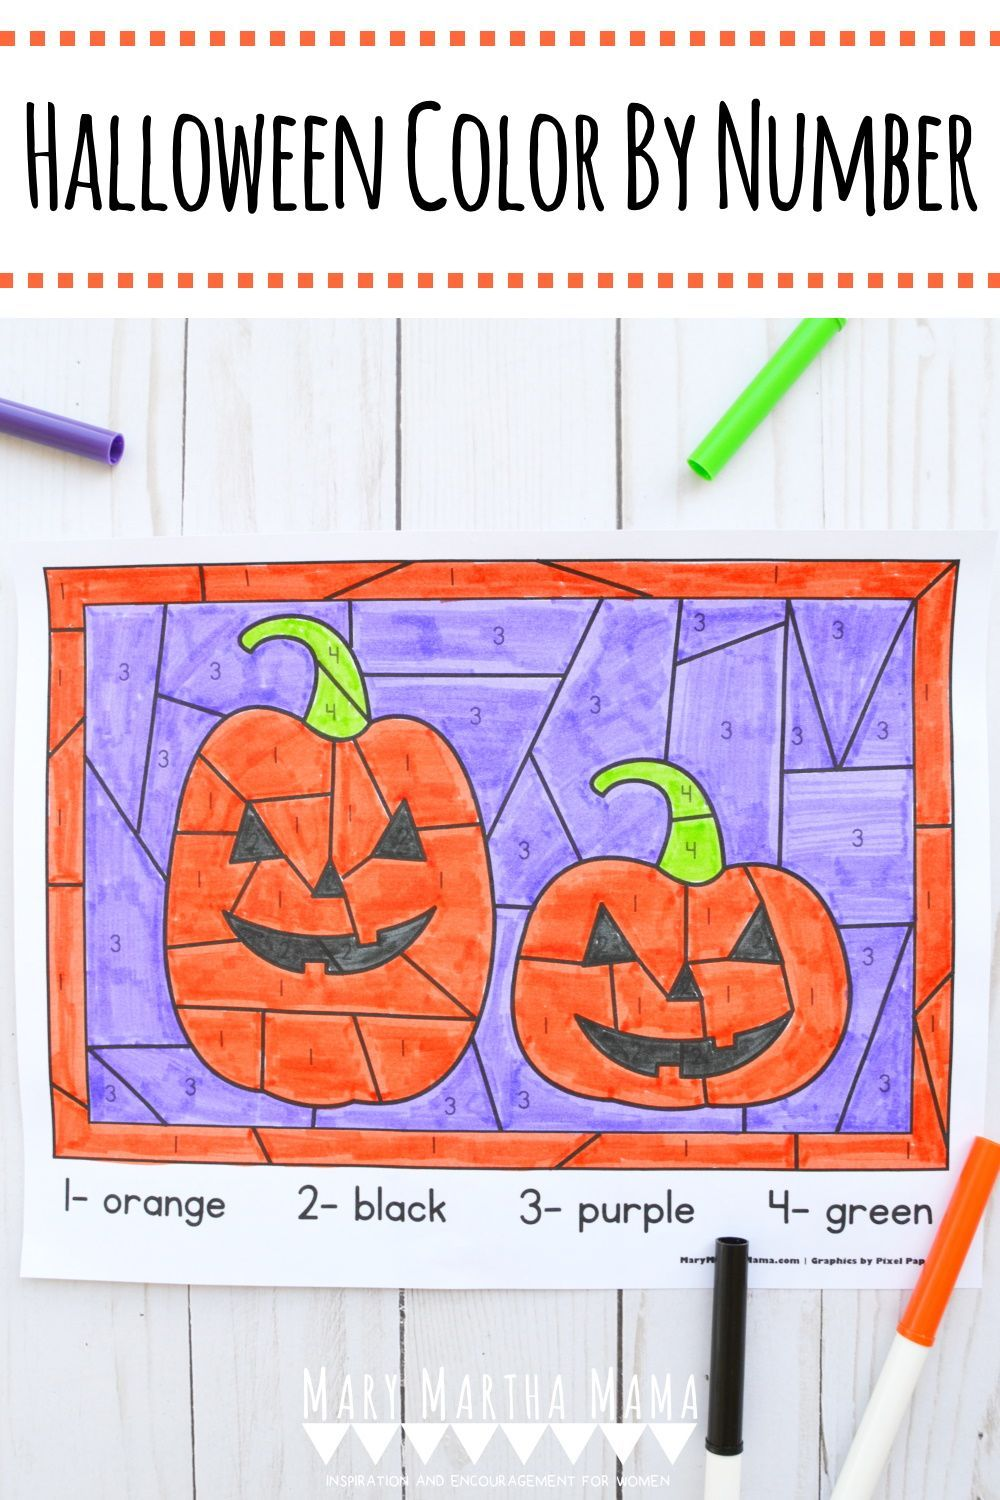 Halloween Color By Number Mary Martha Mama in 2020